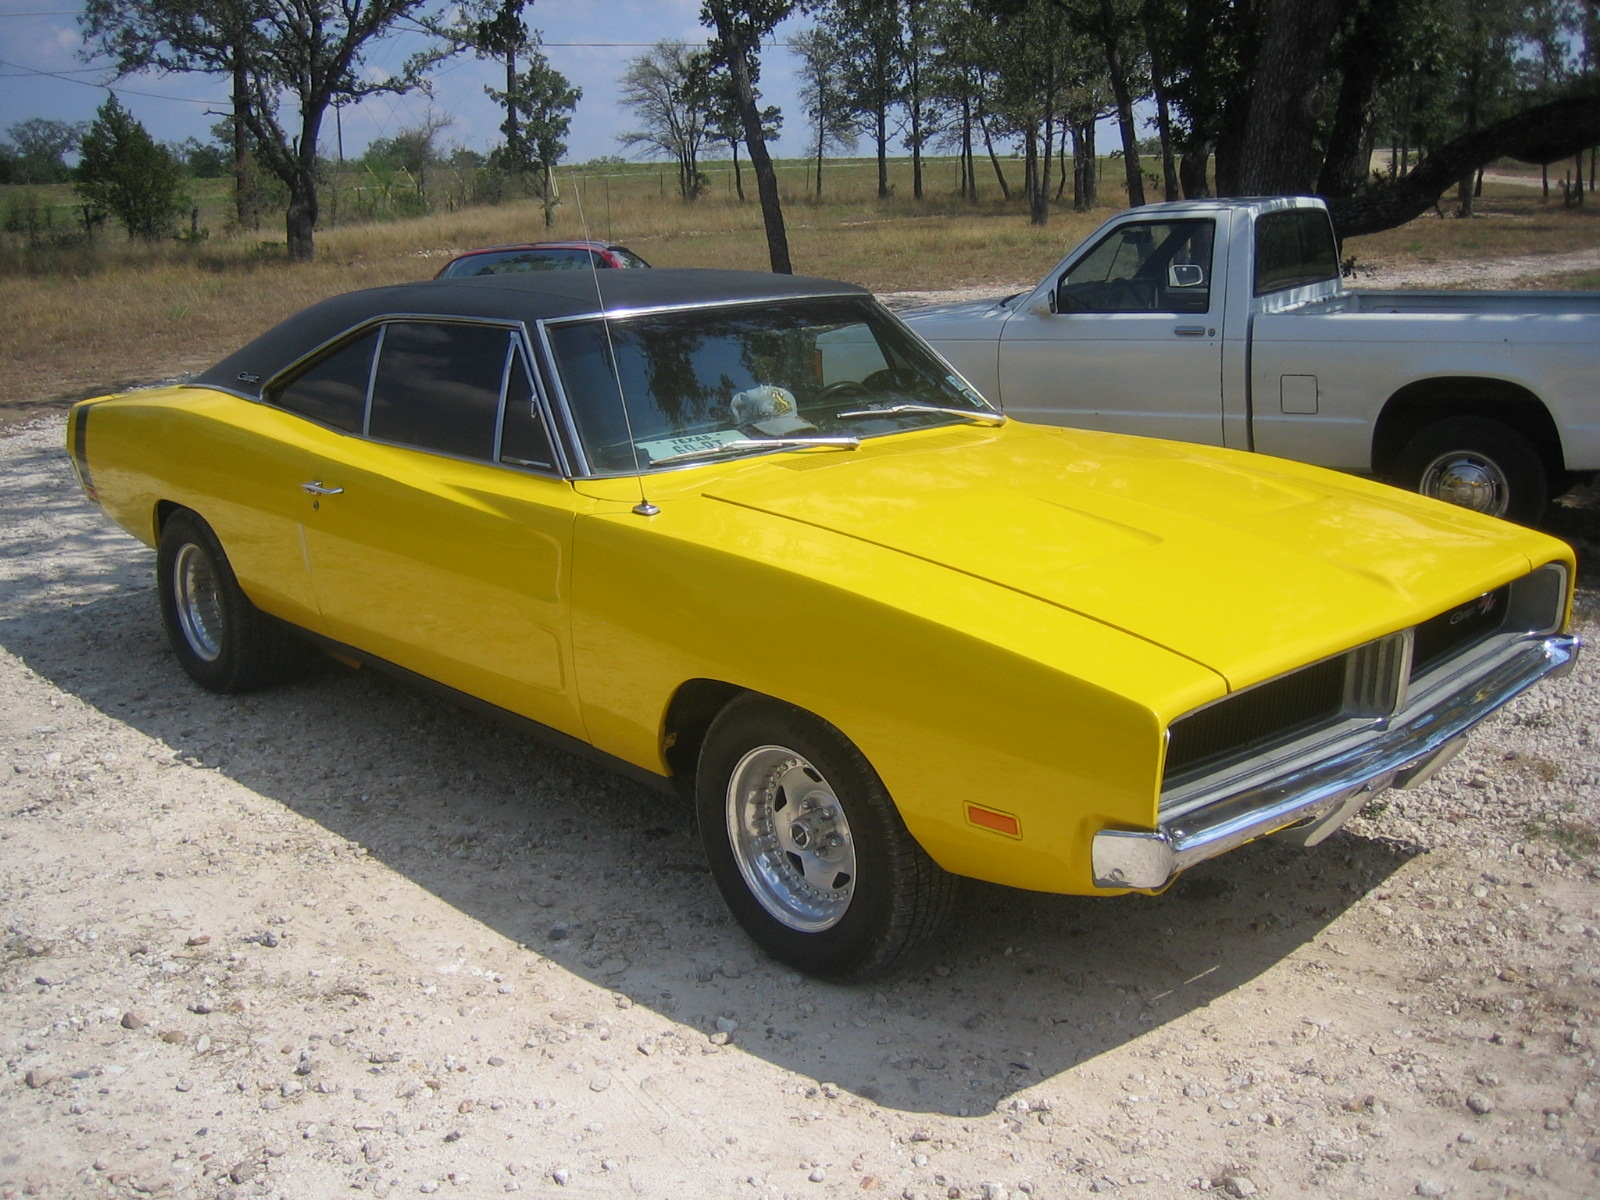 parts otoriyoce on price for com sale cool ltd photos better charger dodge